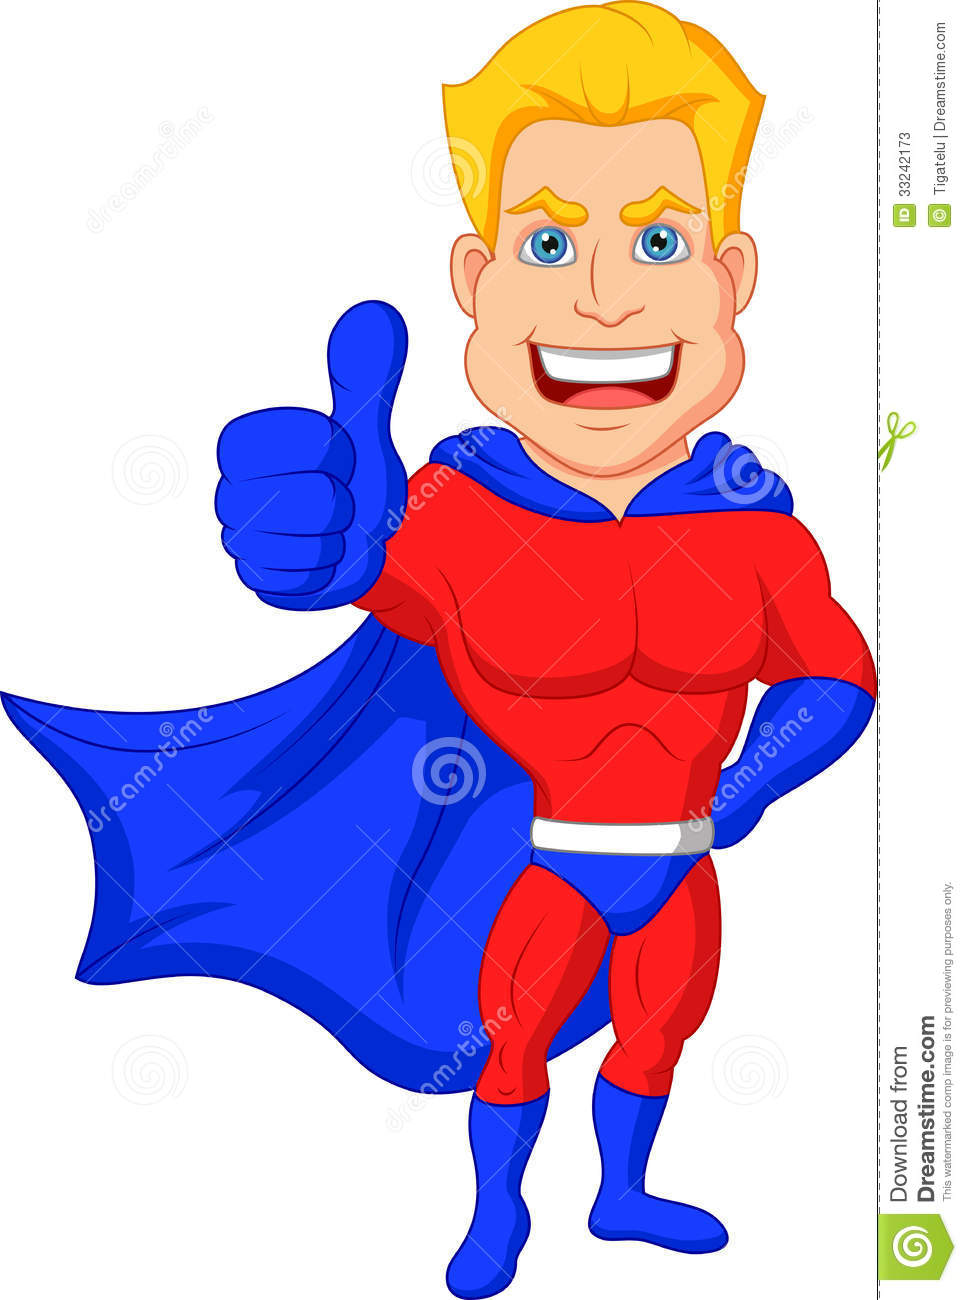 Superhero thumbs up clipart png black and white Superhero Cartoon With Thumb Up Stock Photos - Image: 33242173 png black and white